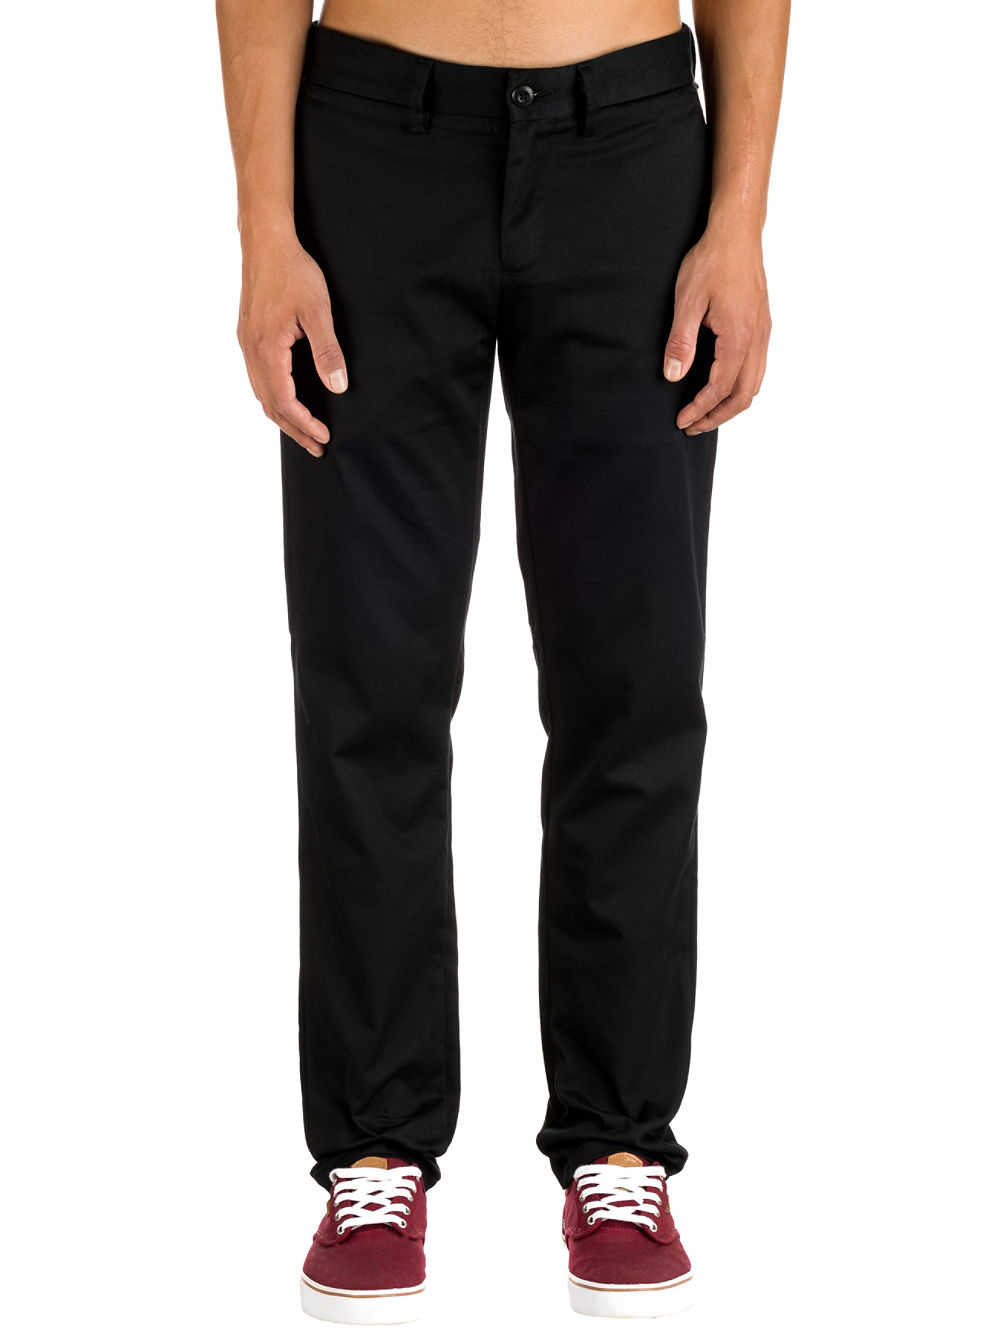 Barlin Chino II Pants